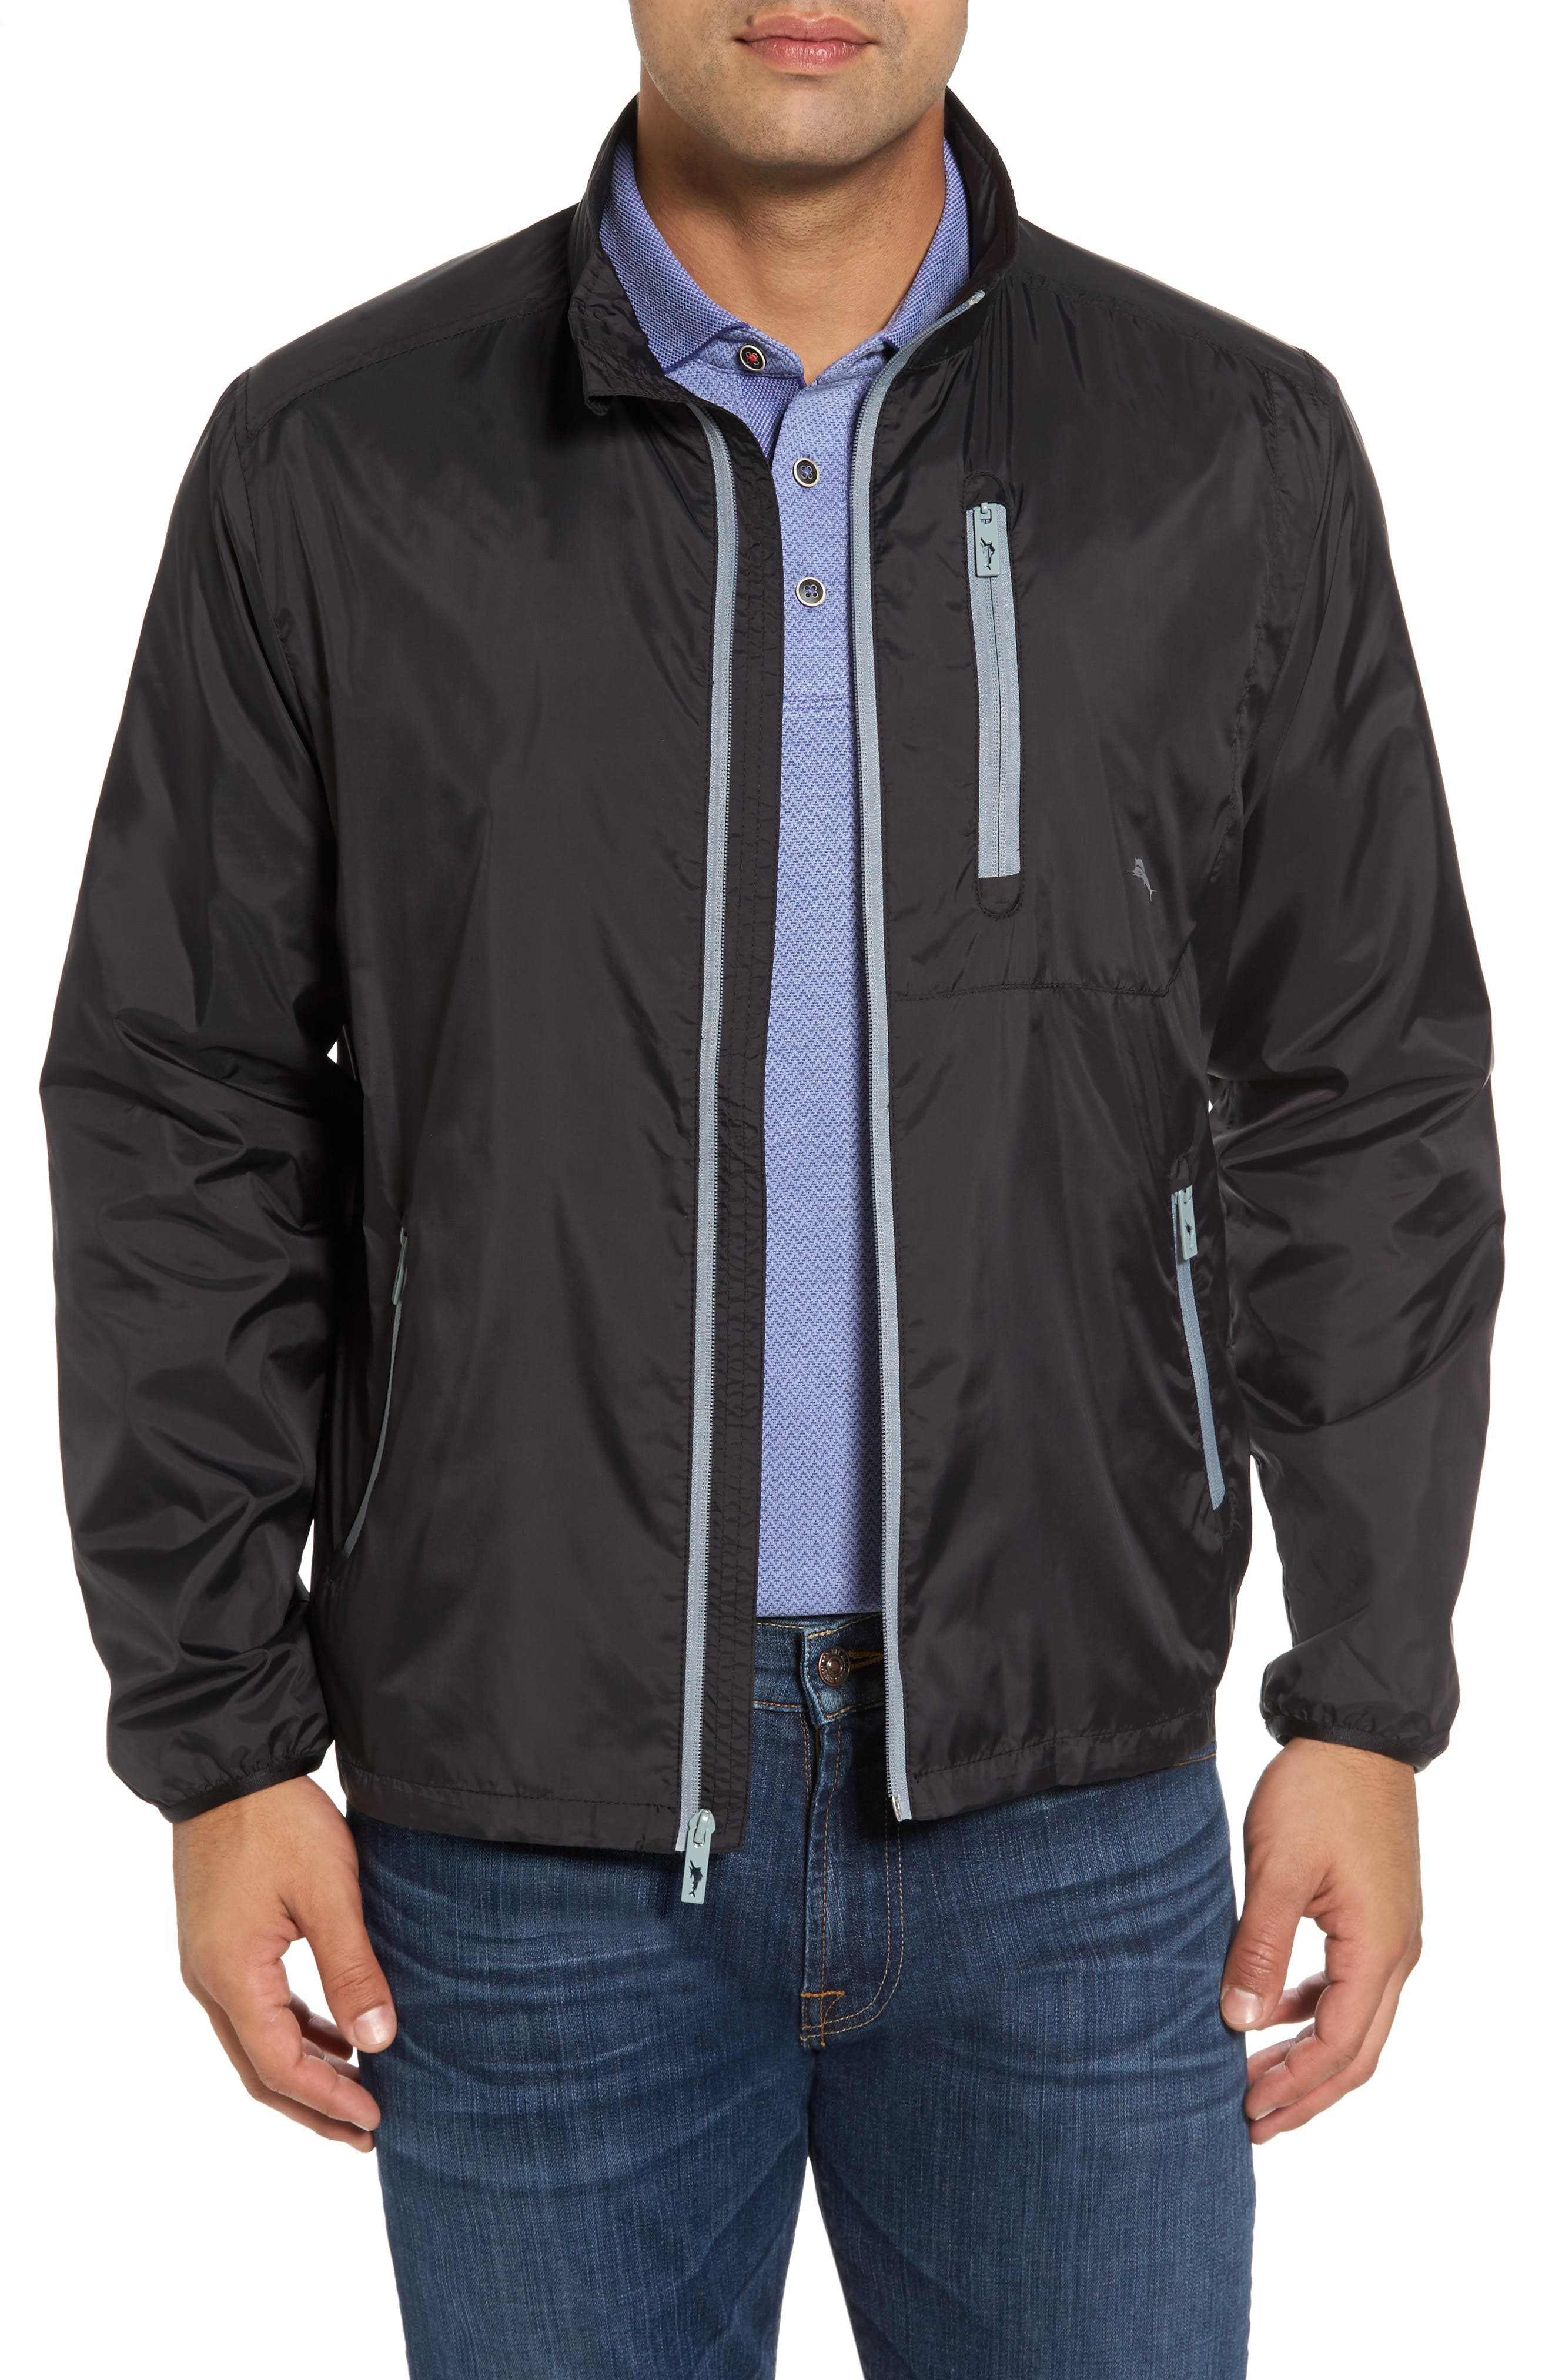 Main Image - Tommy Bahama Nine Iron Water-Repellent Jacket